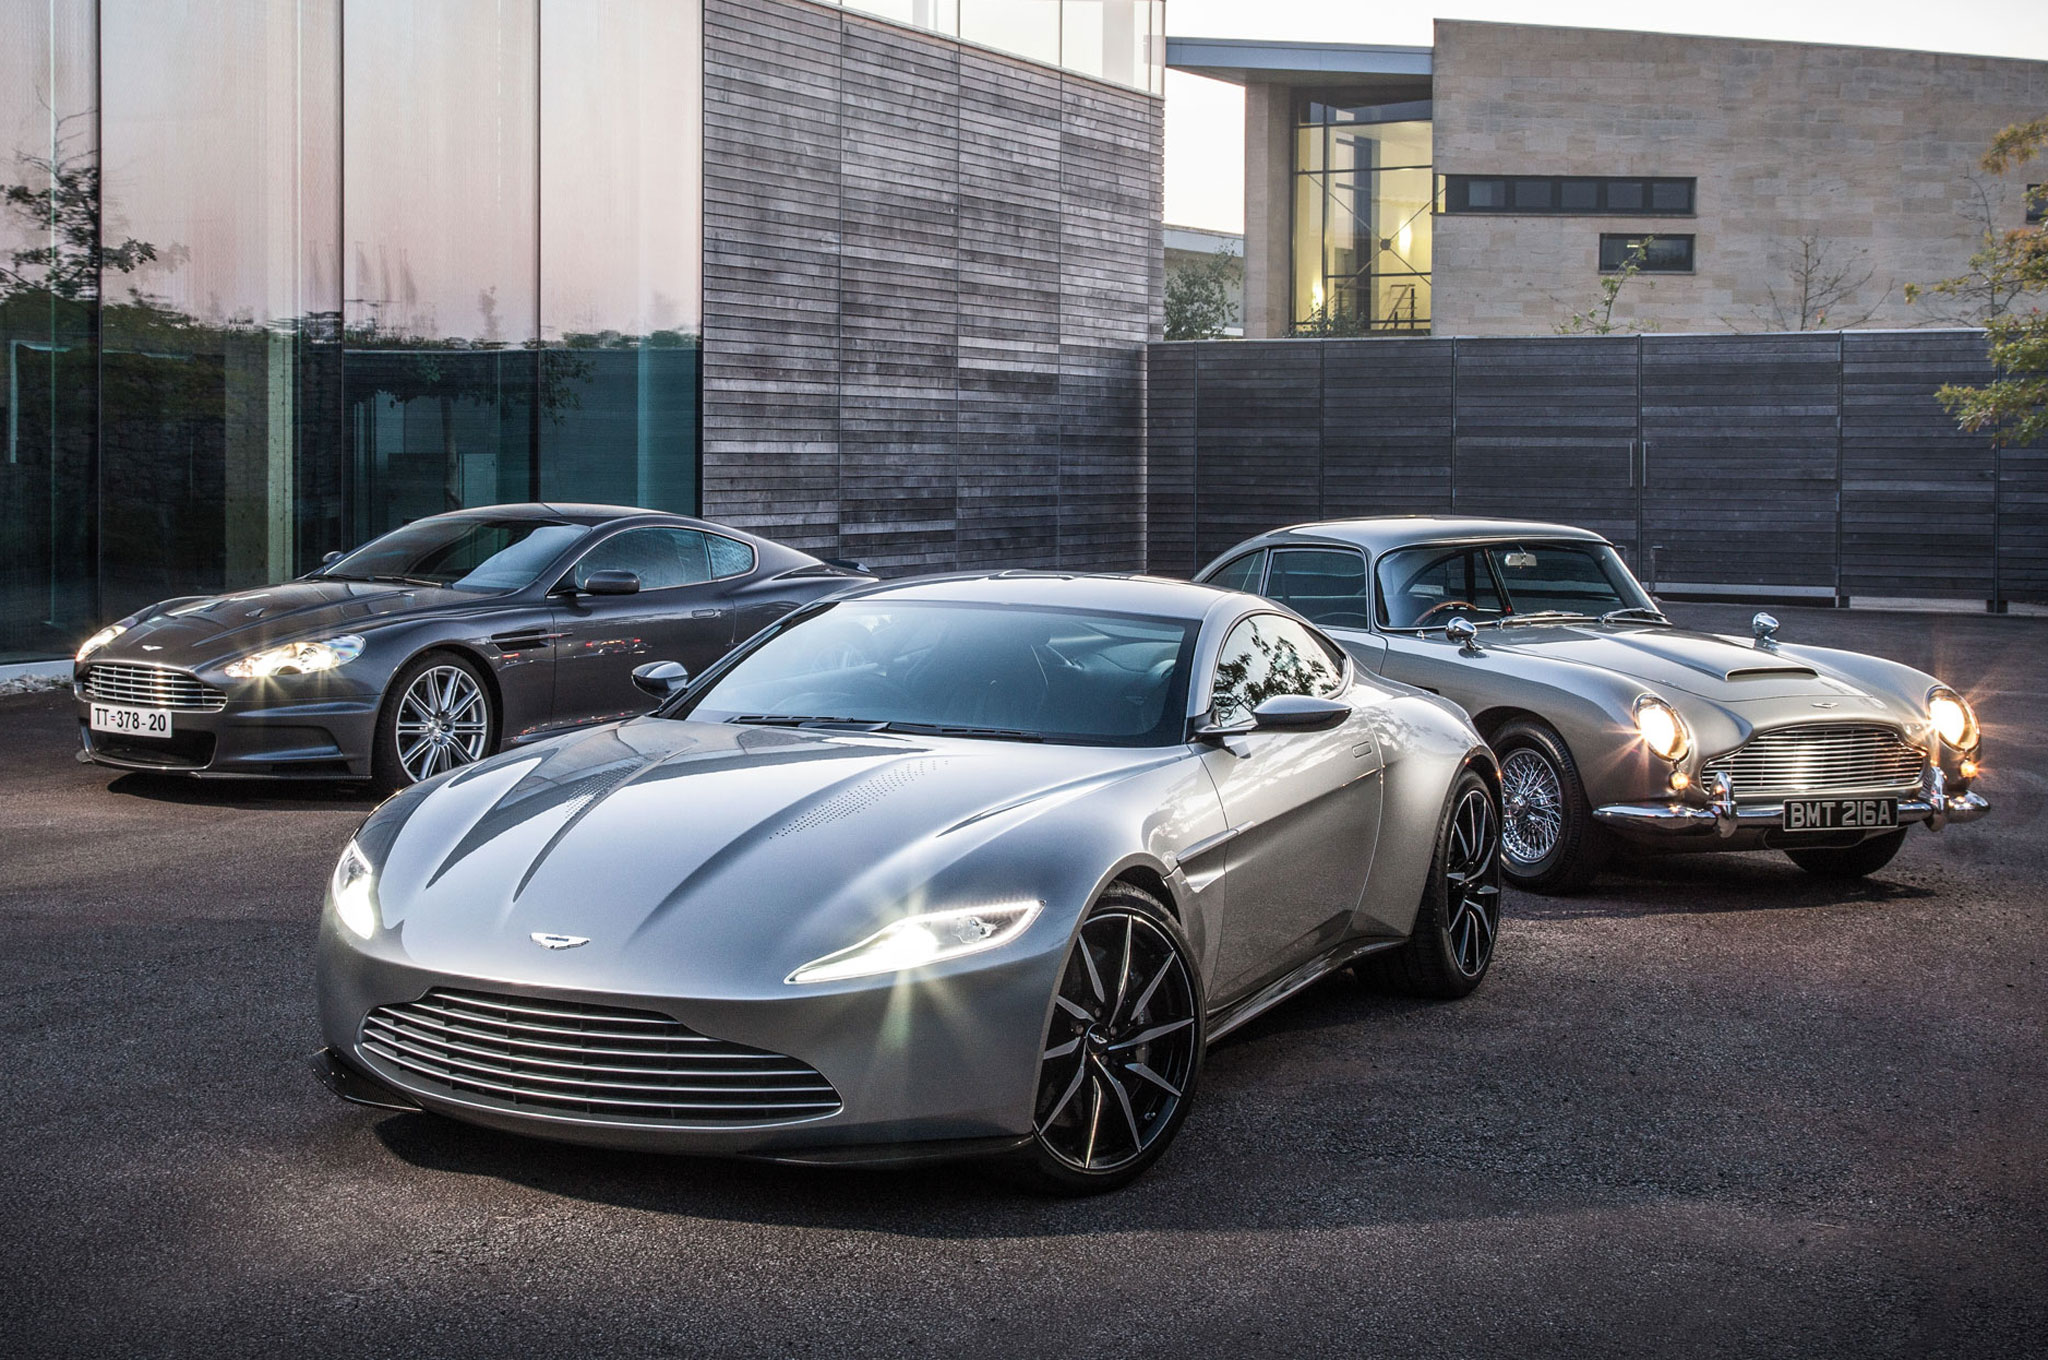 """Aston Martin DB10 From """"Spectre"""" Headed To Charity Auction"""